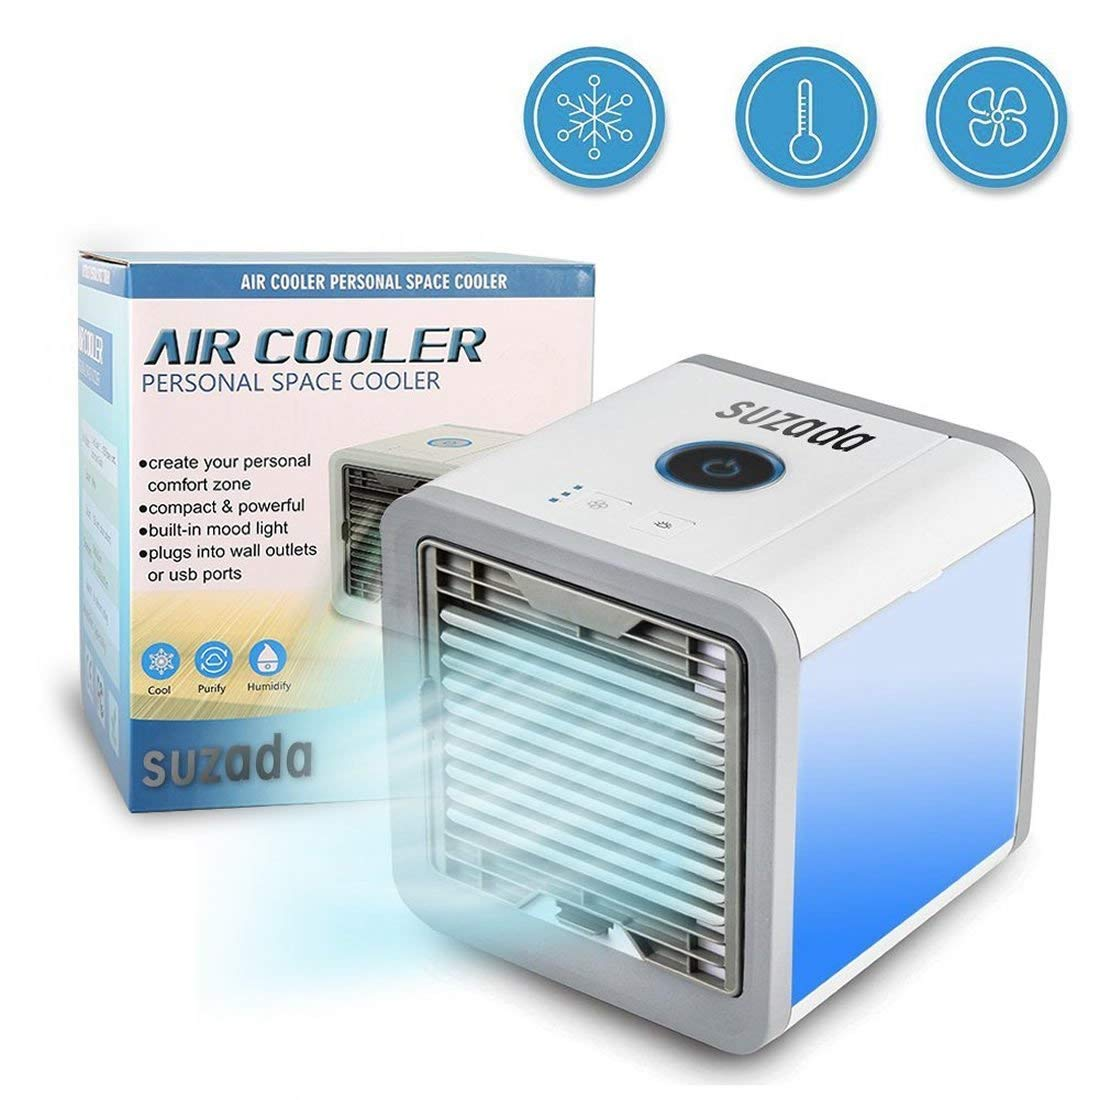 AlenX portable air conditionerwith Humidifier and Air Purifier,arctic air personal space cooler,Portable Space Cooler for 45 Square Feet